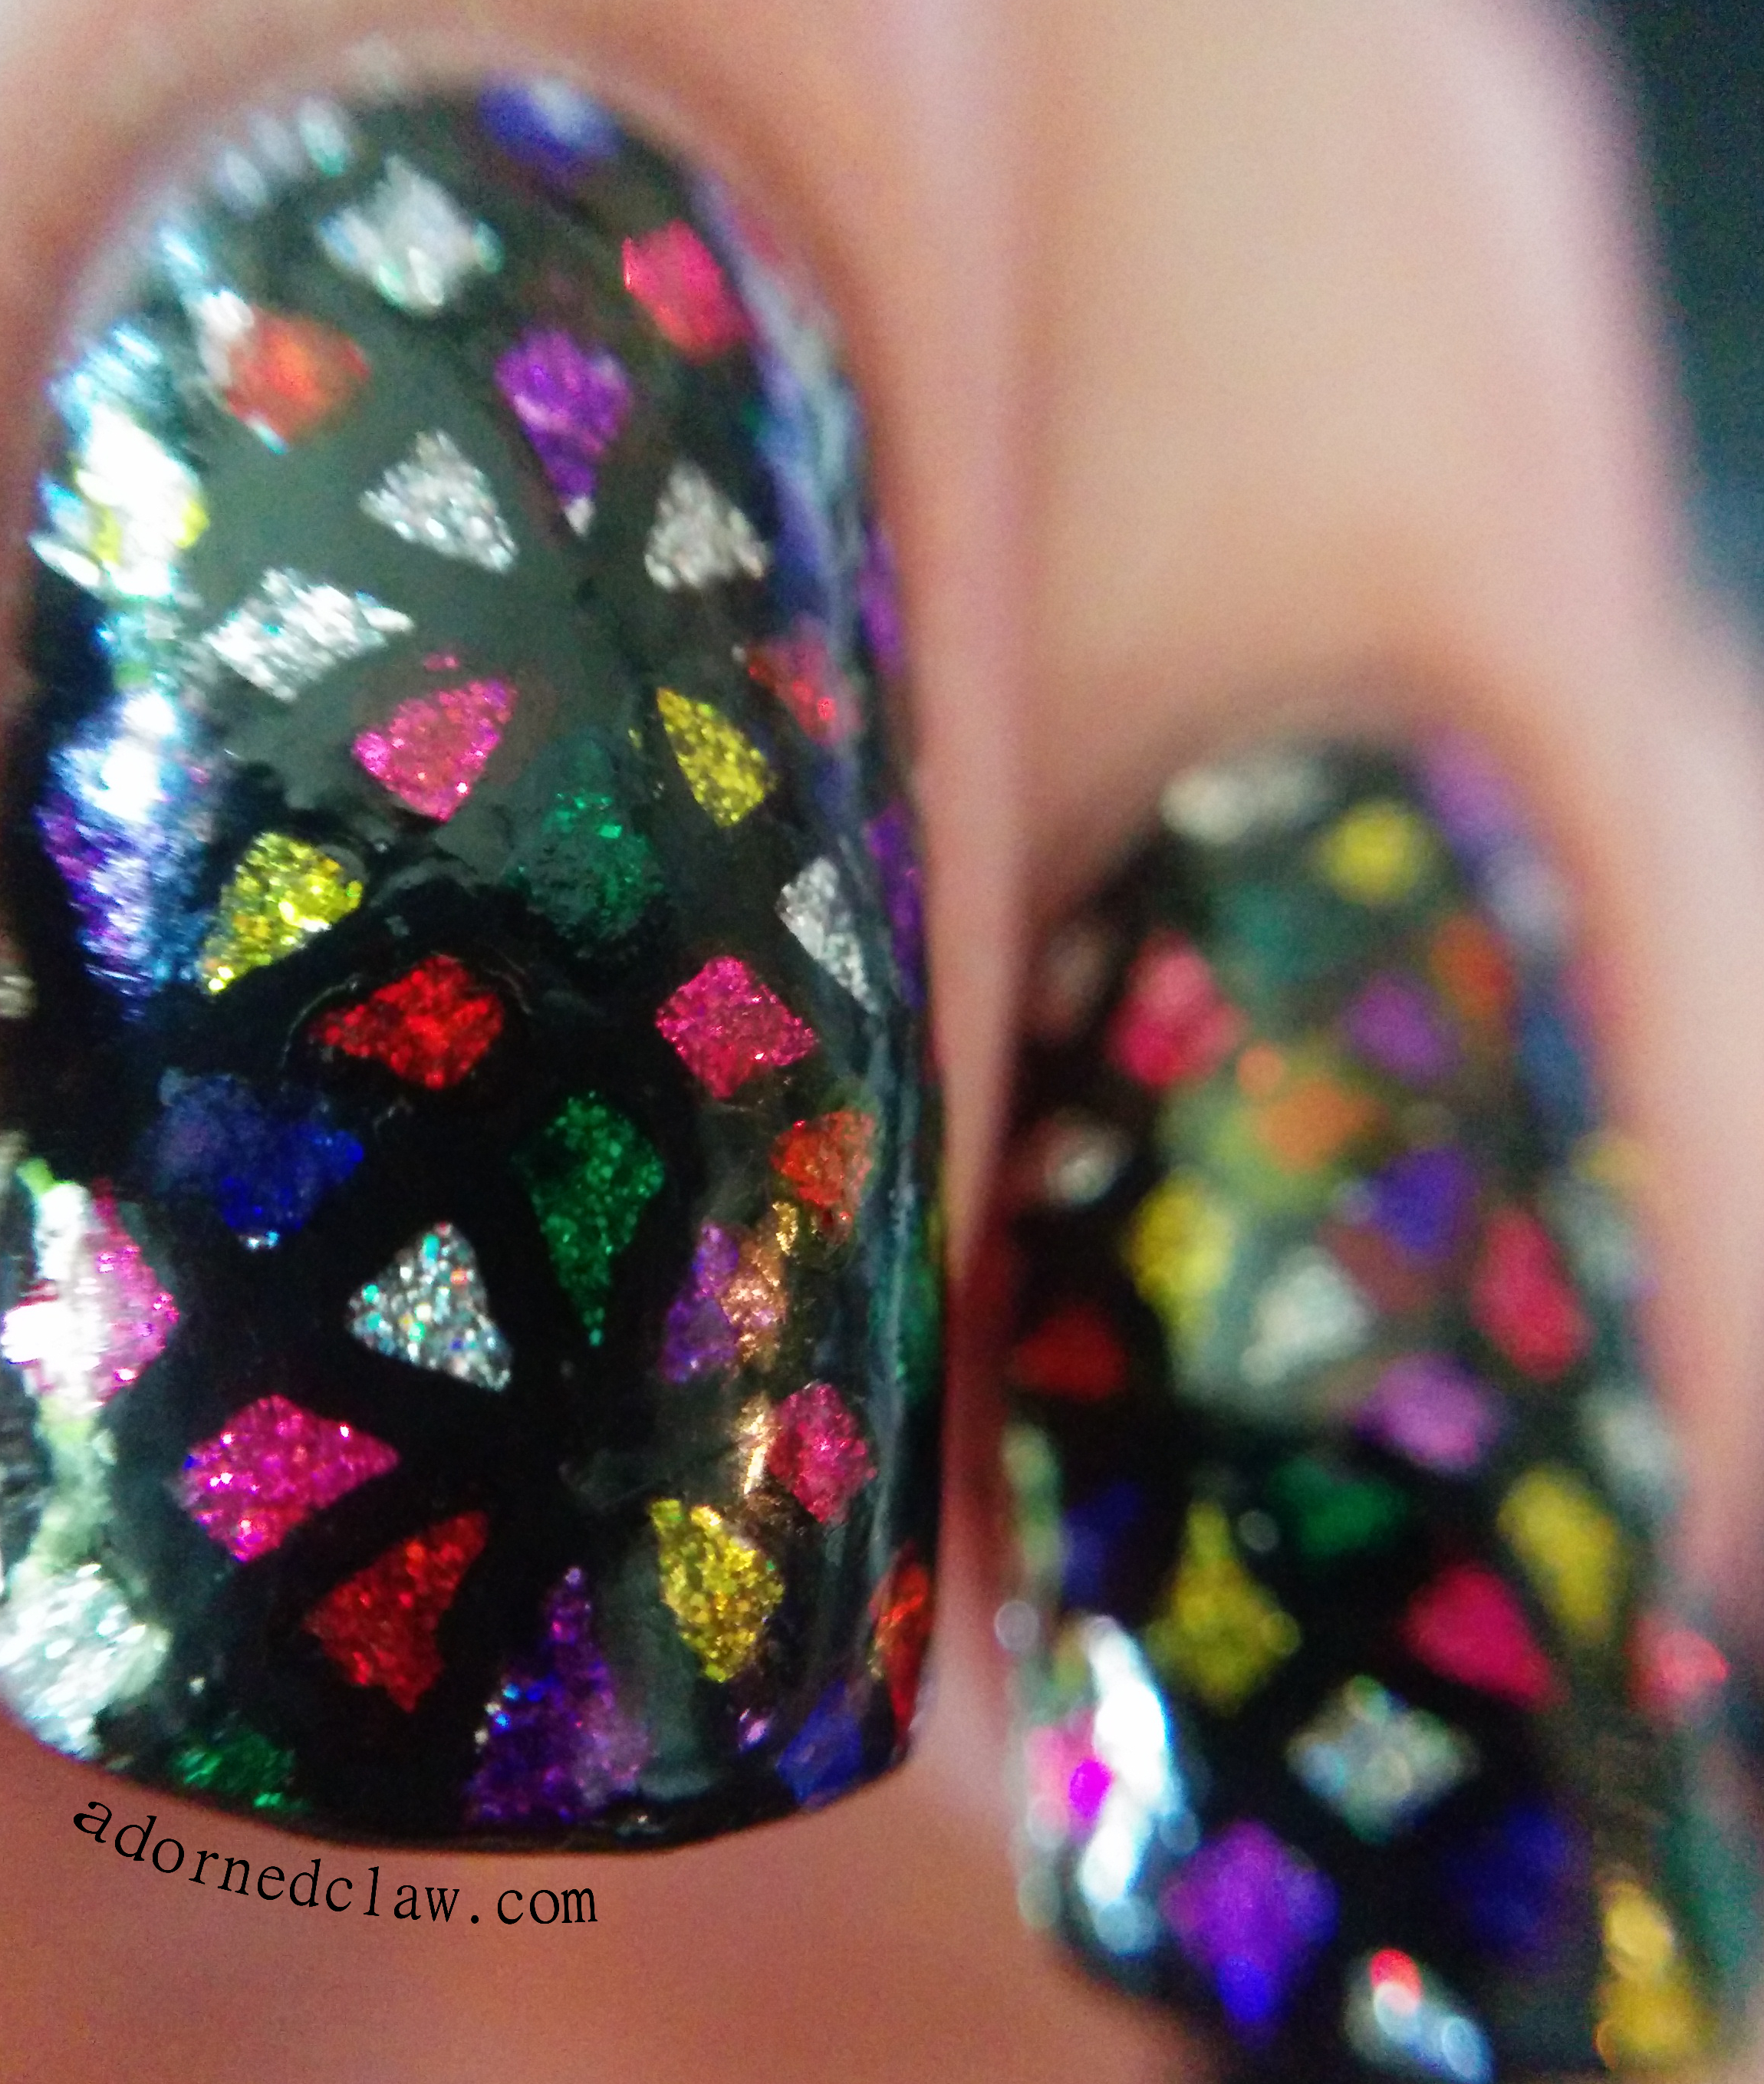 The Adorned Claw: Stained Glass Nail Art